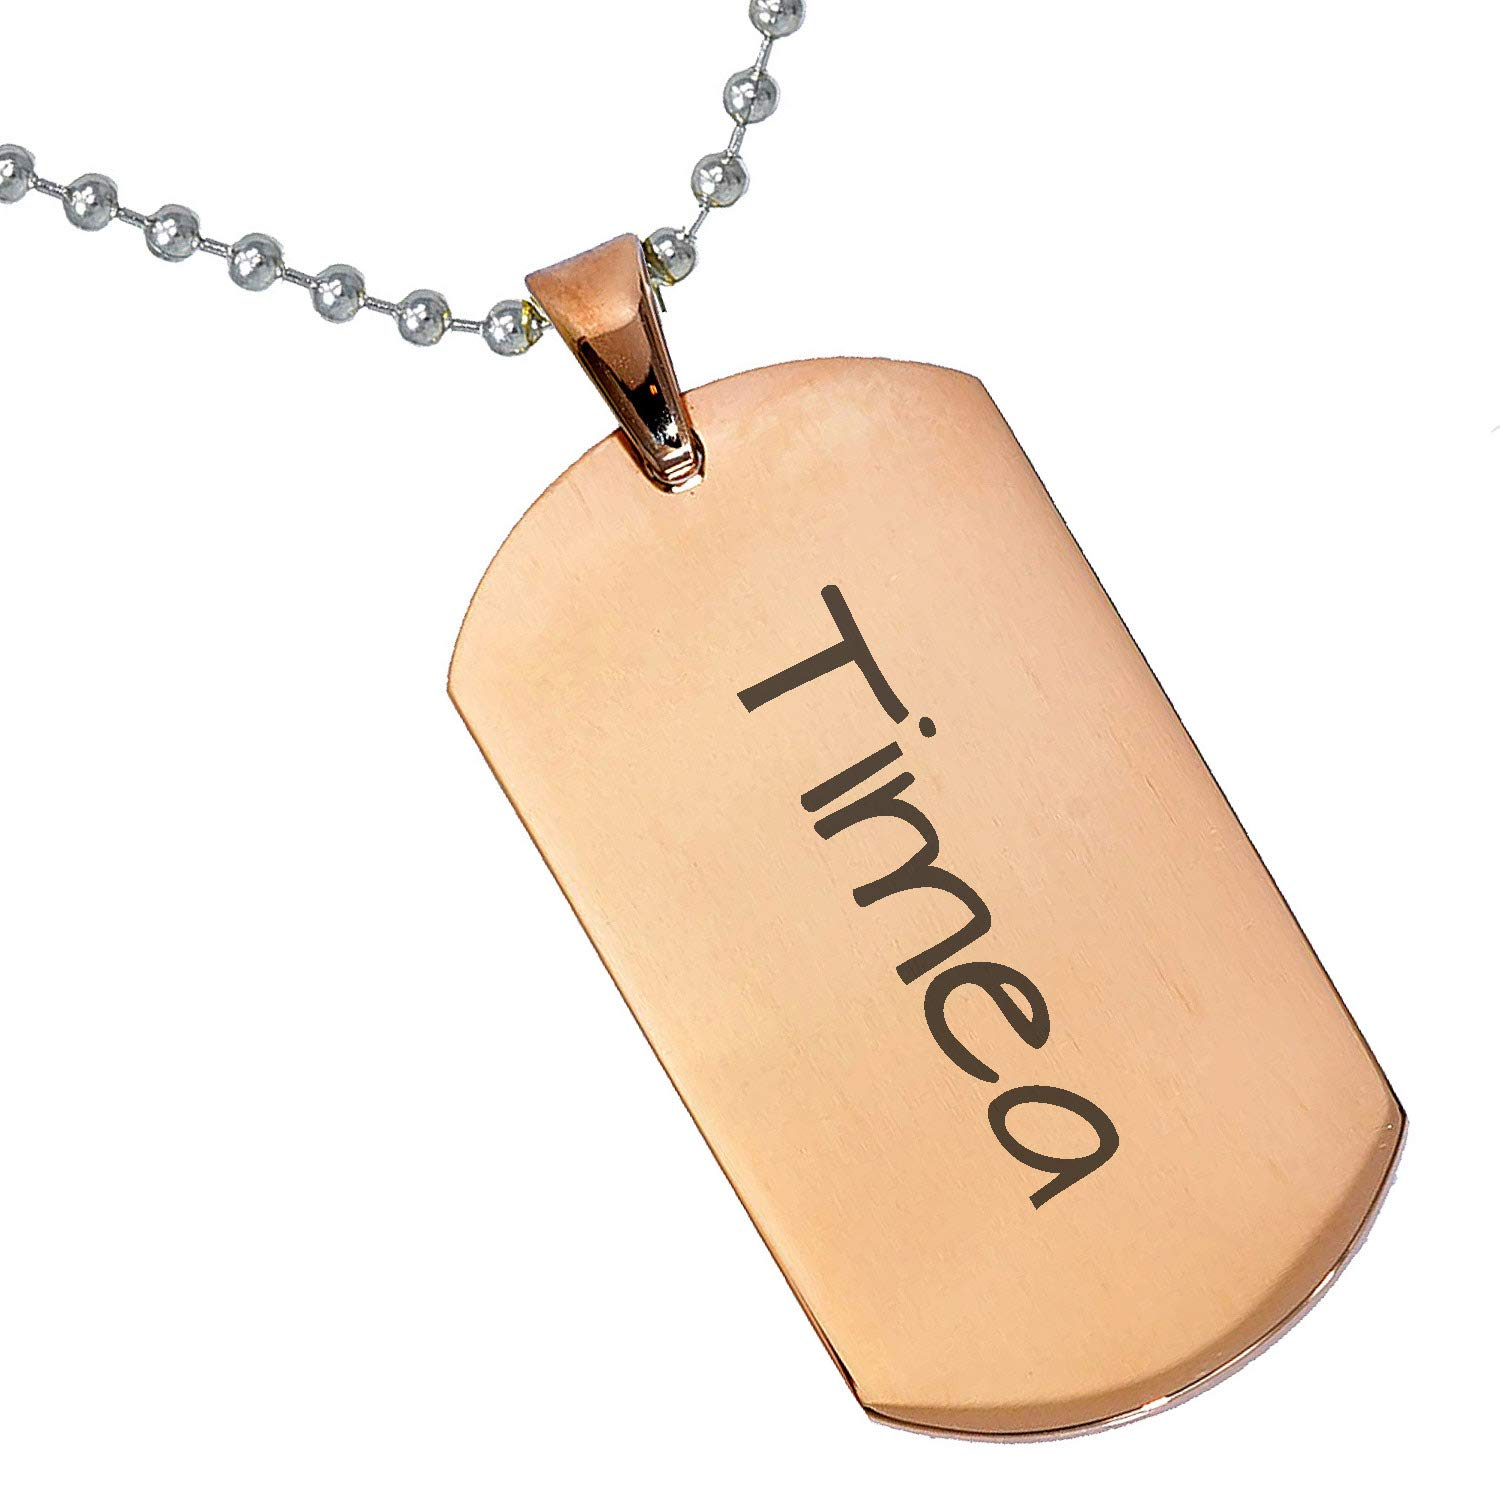 Stainless Steel Silver Gold Black Rose Gold Color Baby Name Timea Engraved Personalized Gifts For Son Daughter Boyfriend Girlfriend Initial Customizable Pendant Necklace Dog Tags 24 Ball Chain